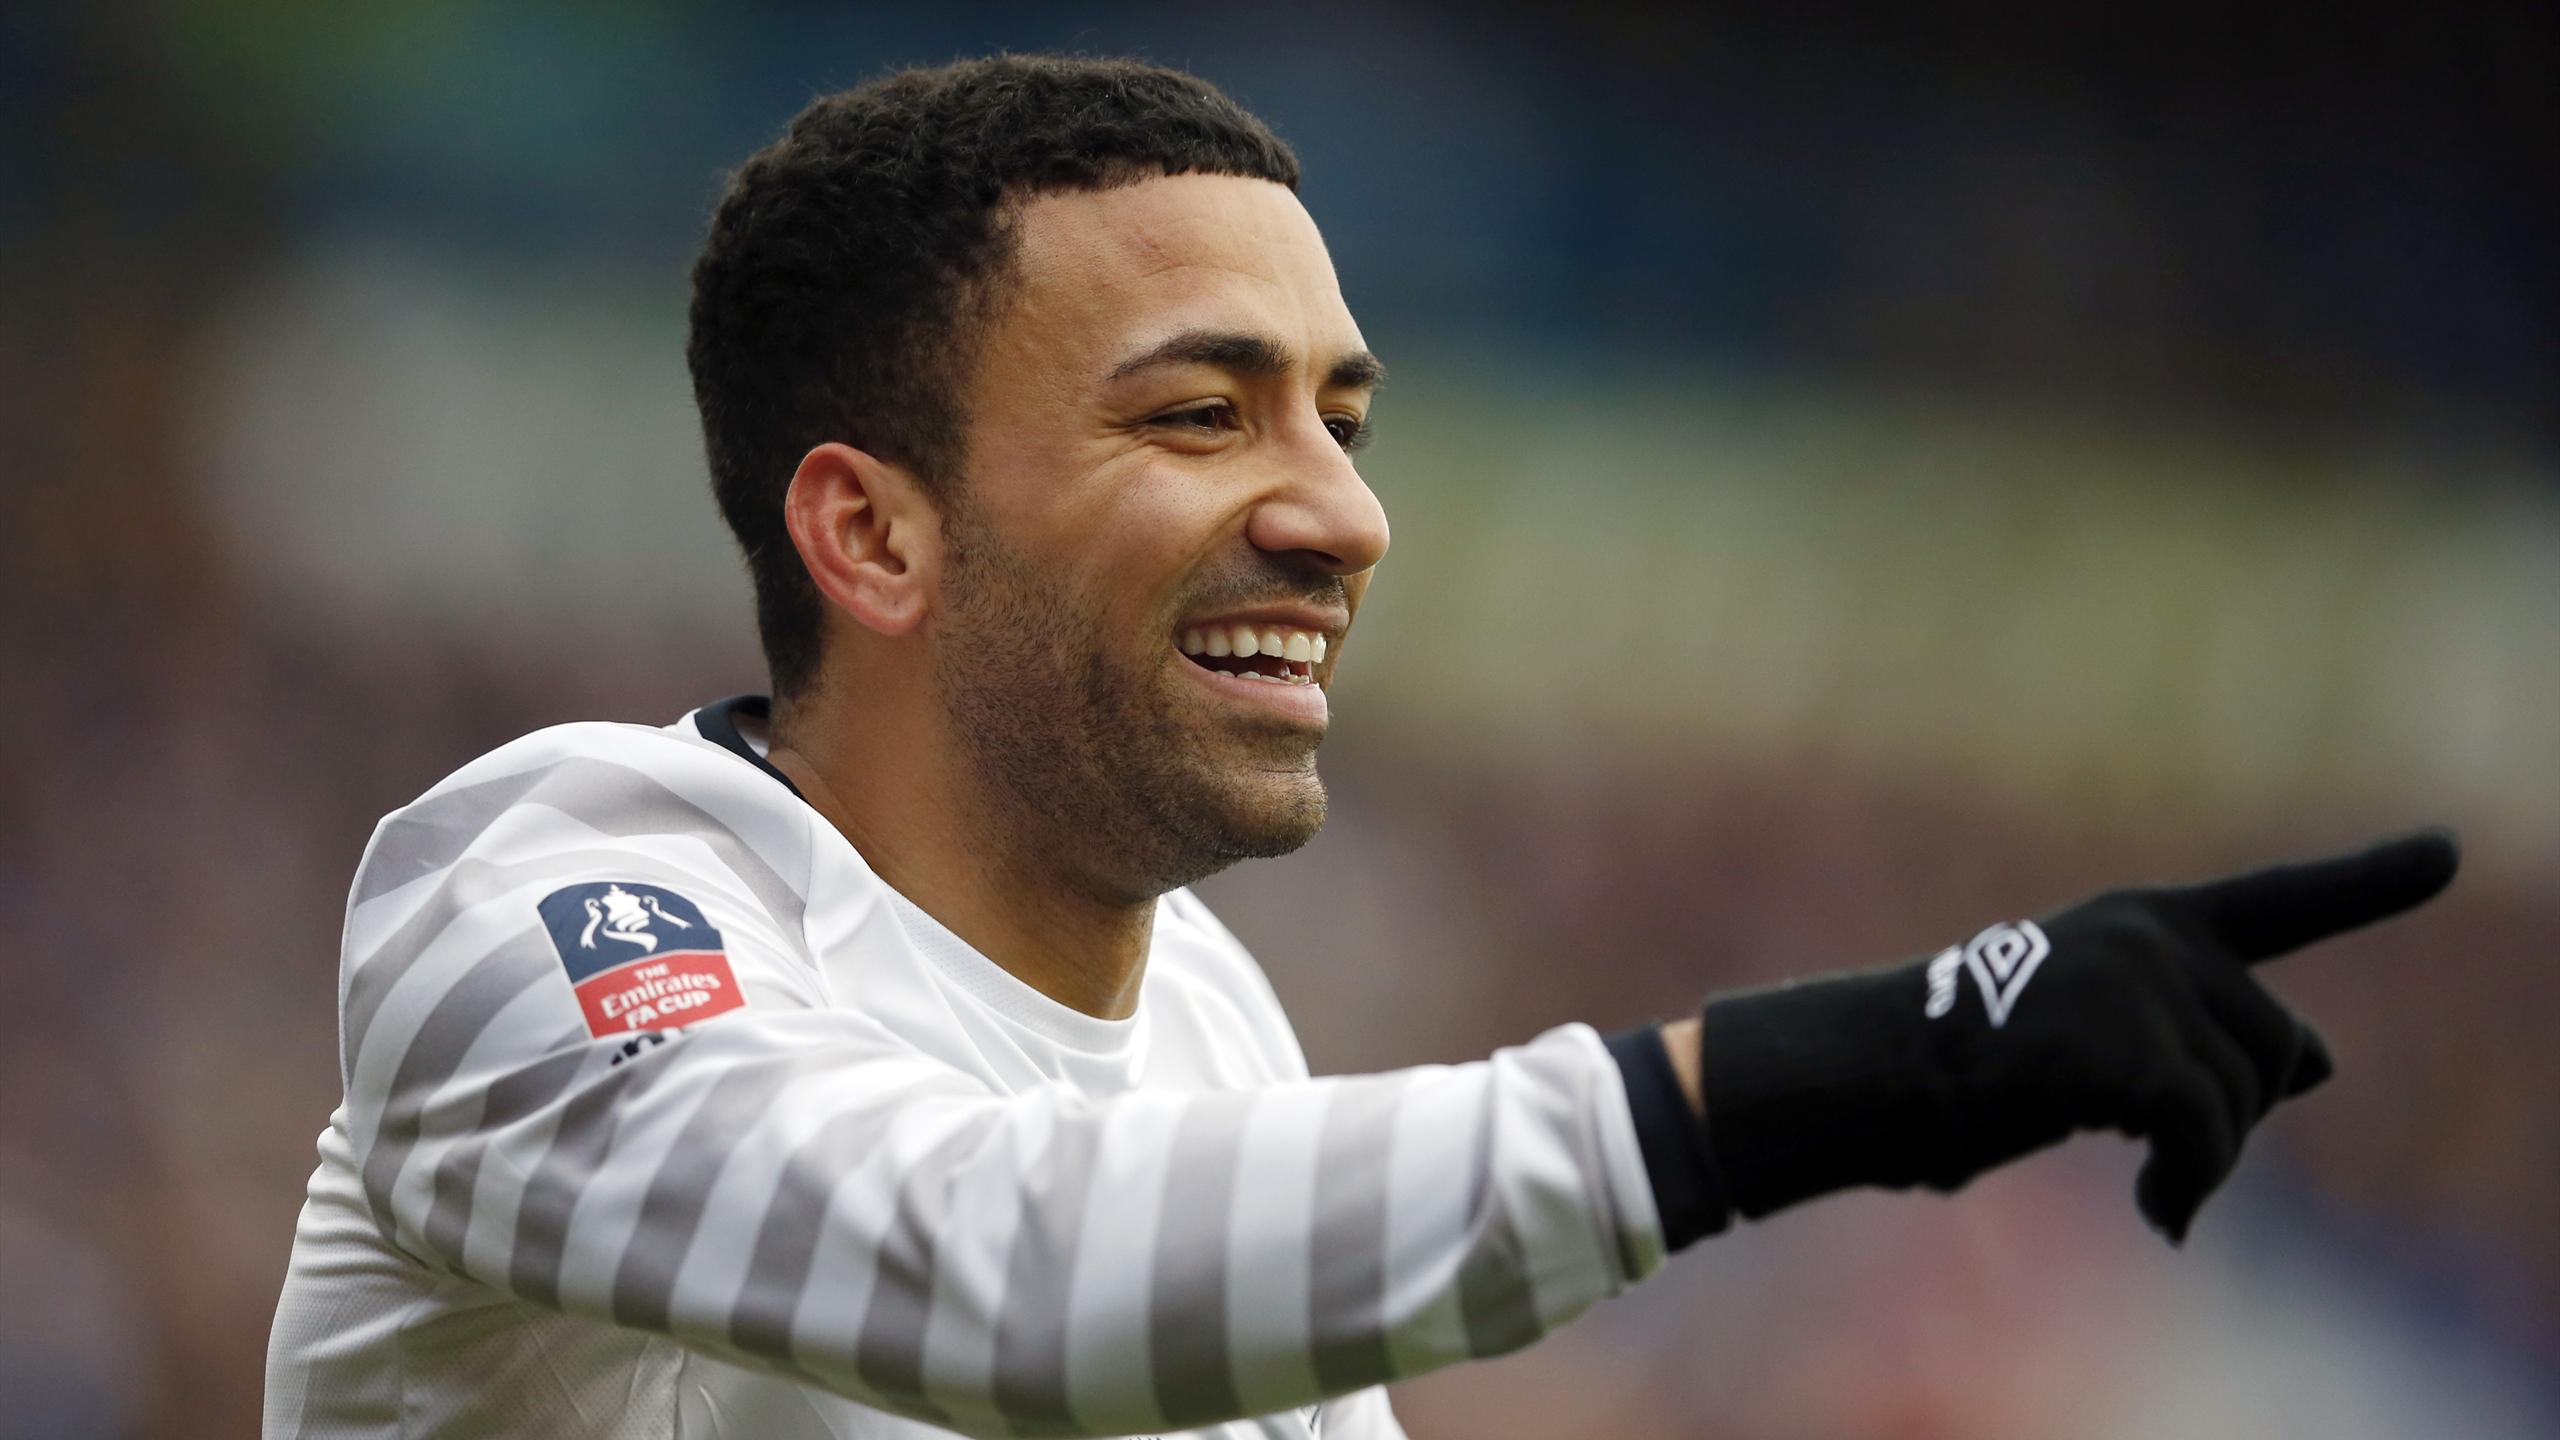 Aaron Lennon celebrates scoring the second goal for Everton